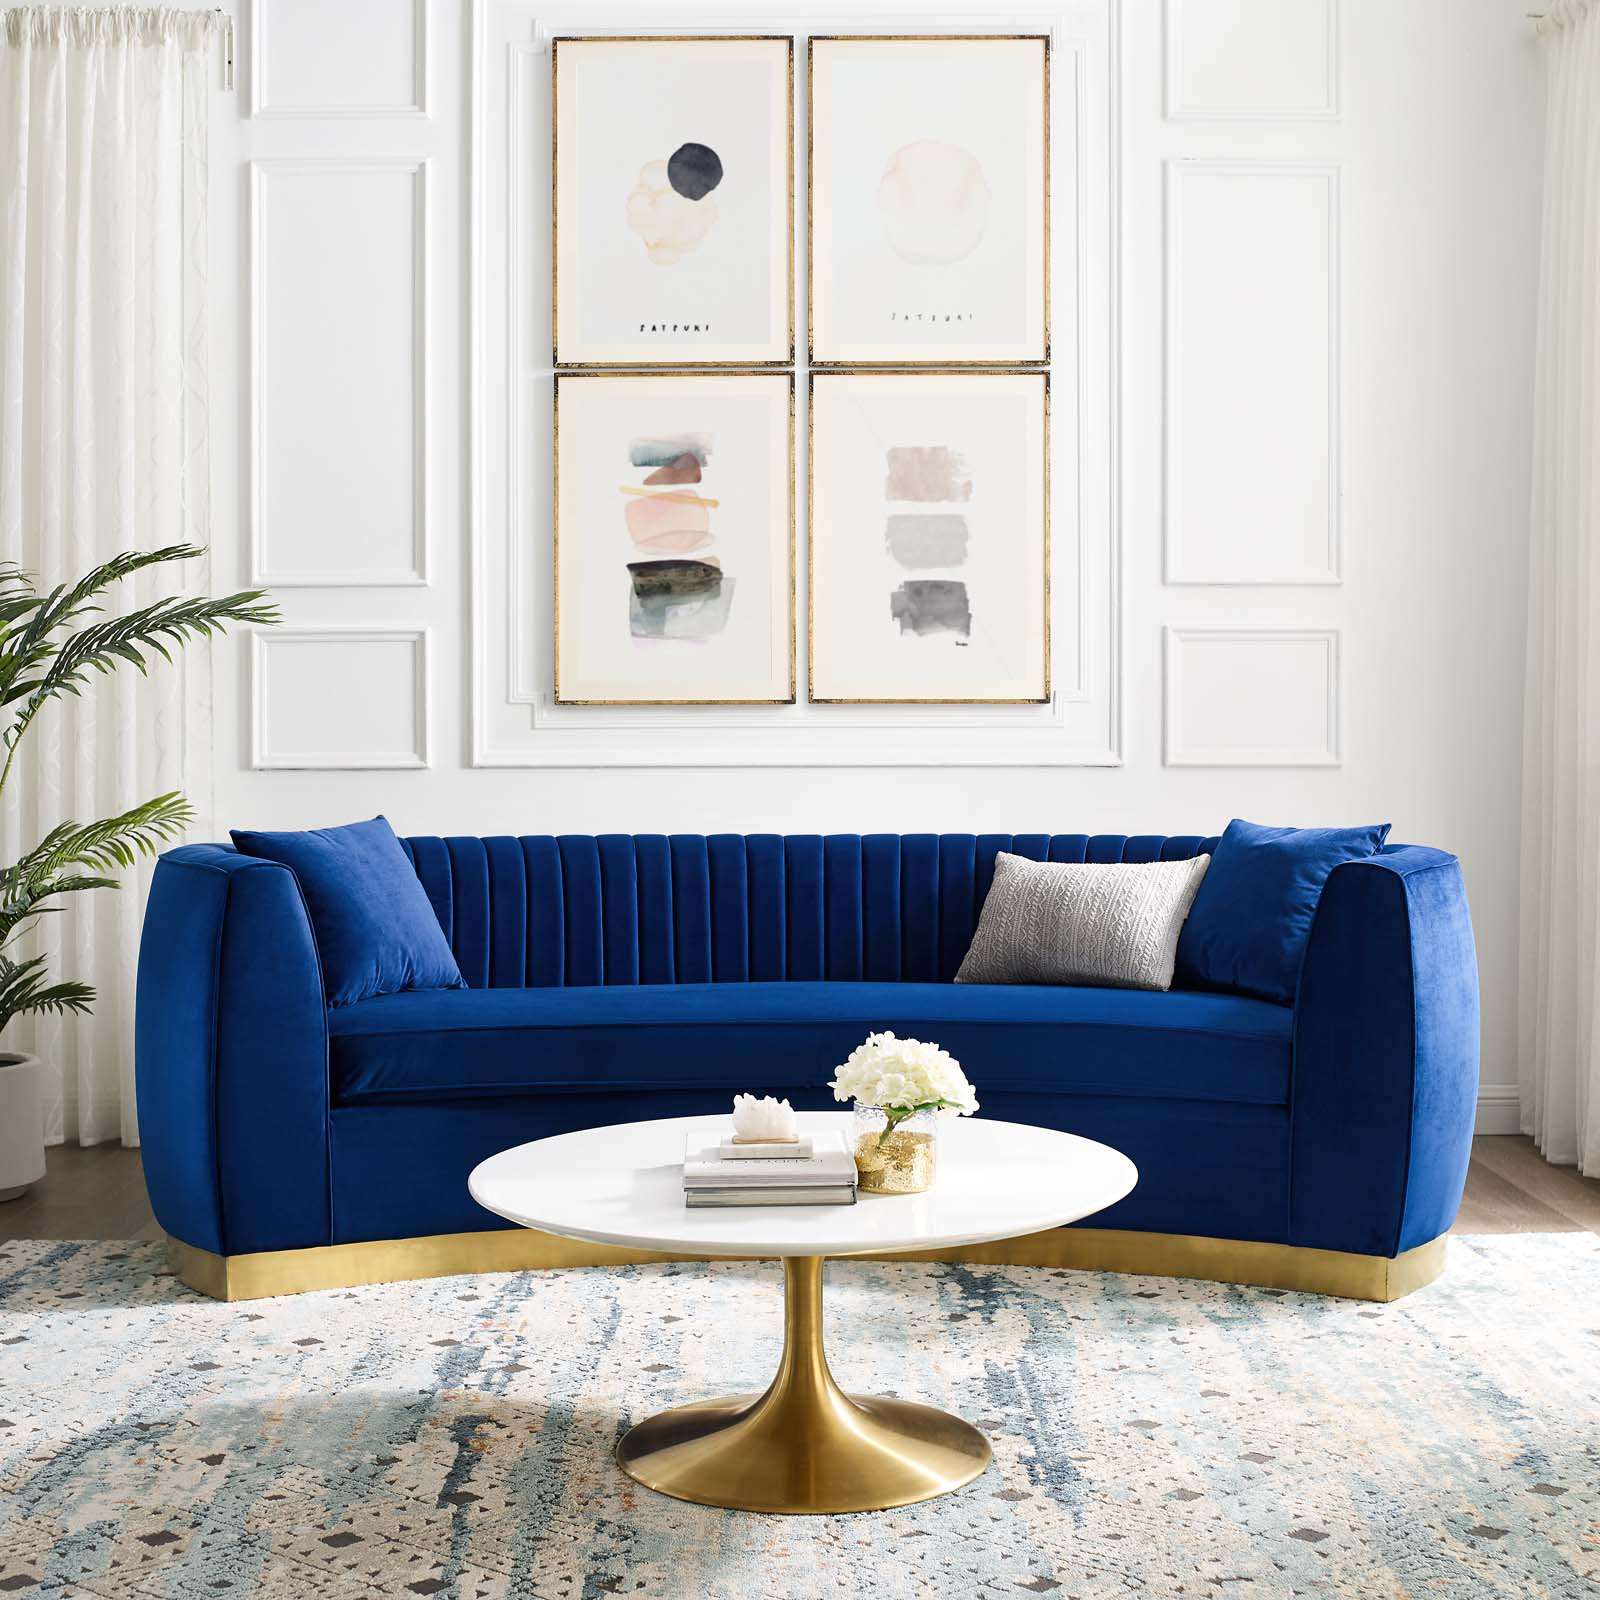 Enthusiastic Vertical Channel Tufted Curved Performance Velvet Sofa By Modway Eei 3407 Nav Tomlinson Furniture